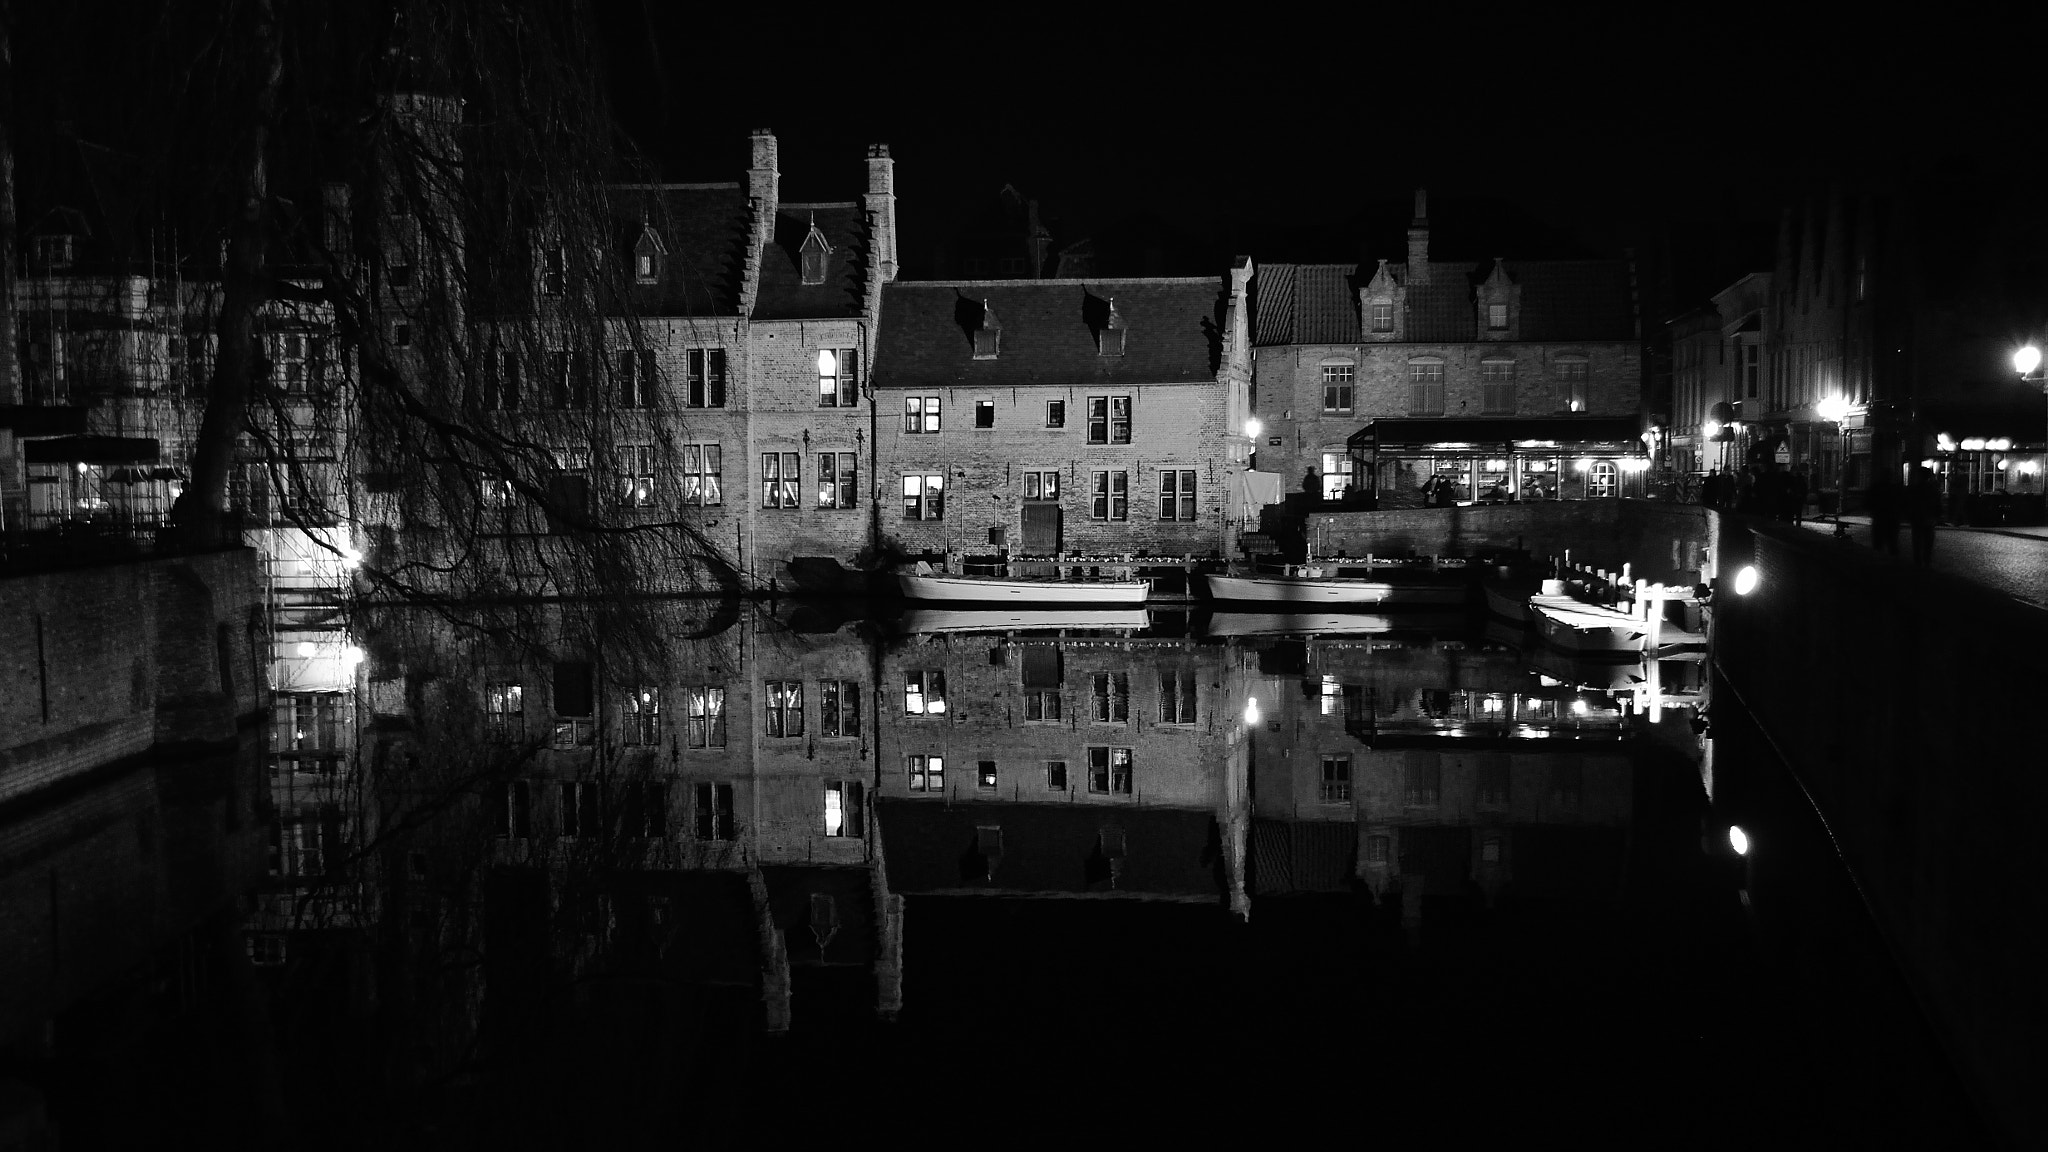 Photograph Reflections in Widescreen by Matt Robinson on 500px